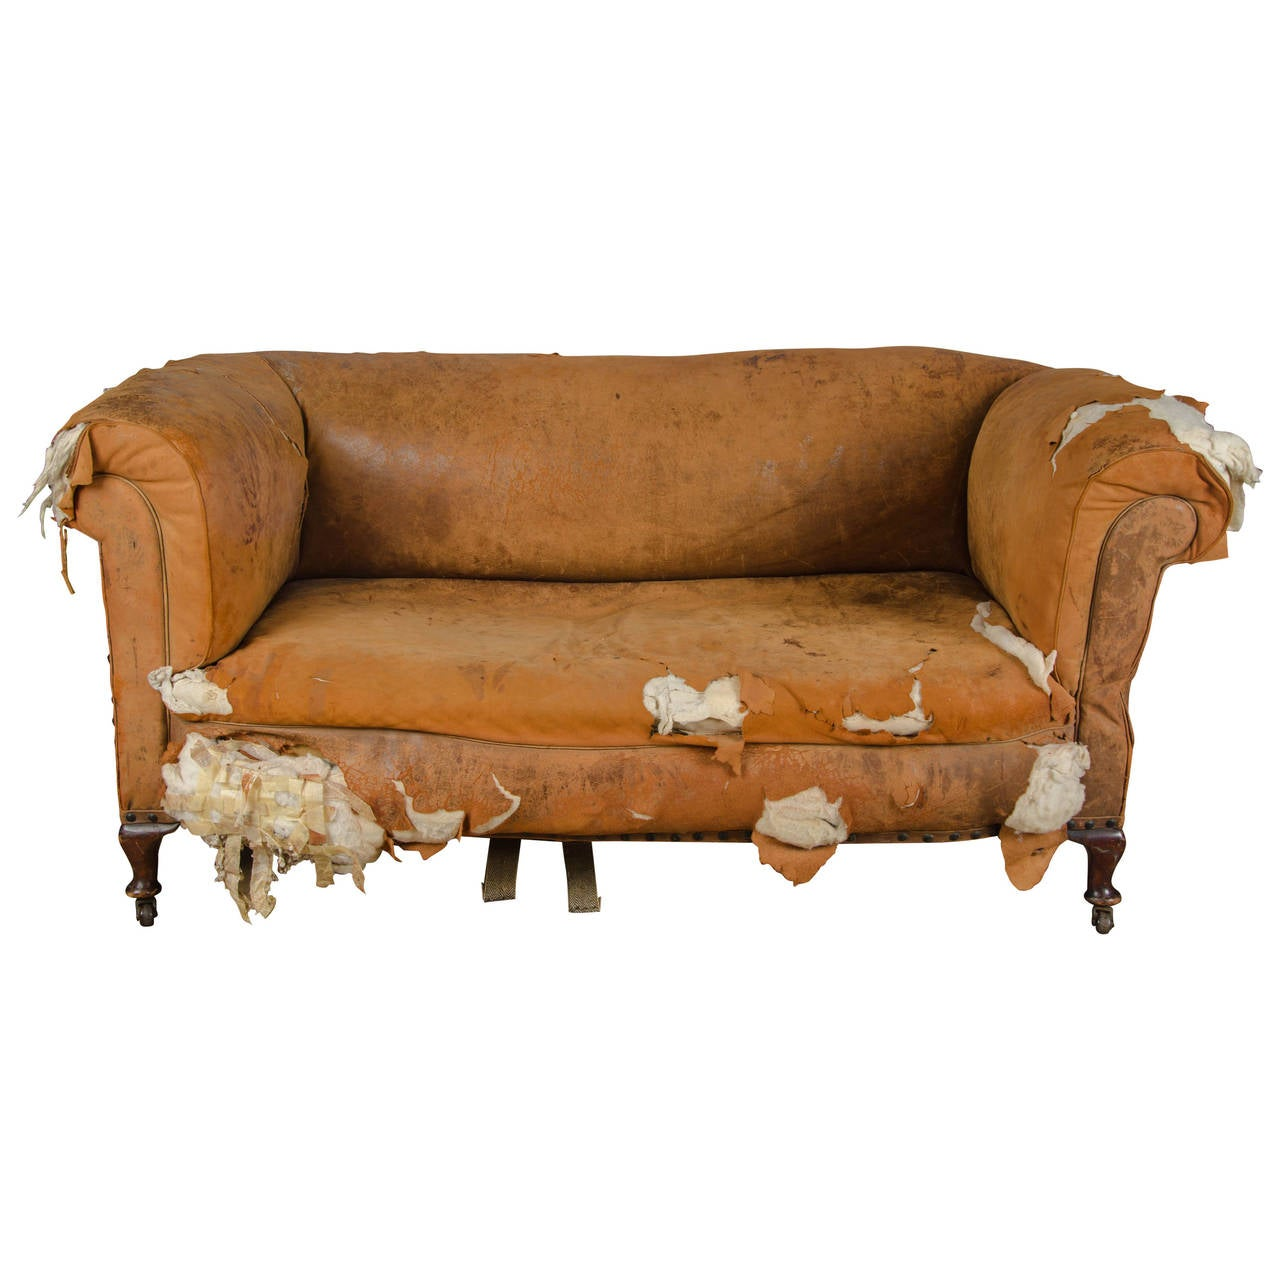 beautiful leather sofas uk red velvet sofa furniture antique distressed victorian drop-end at 1stdibs